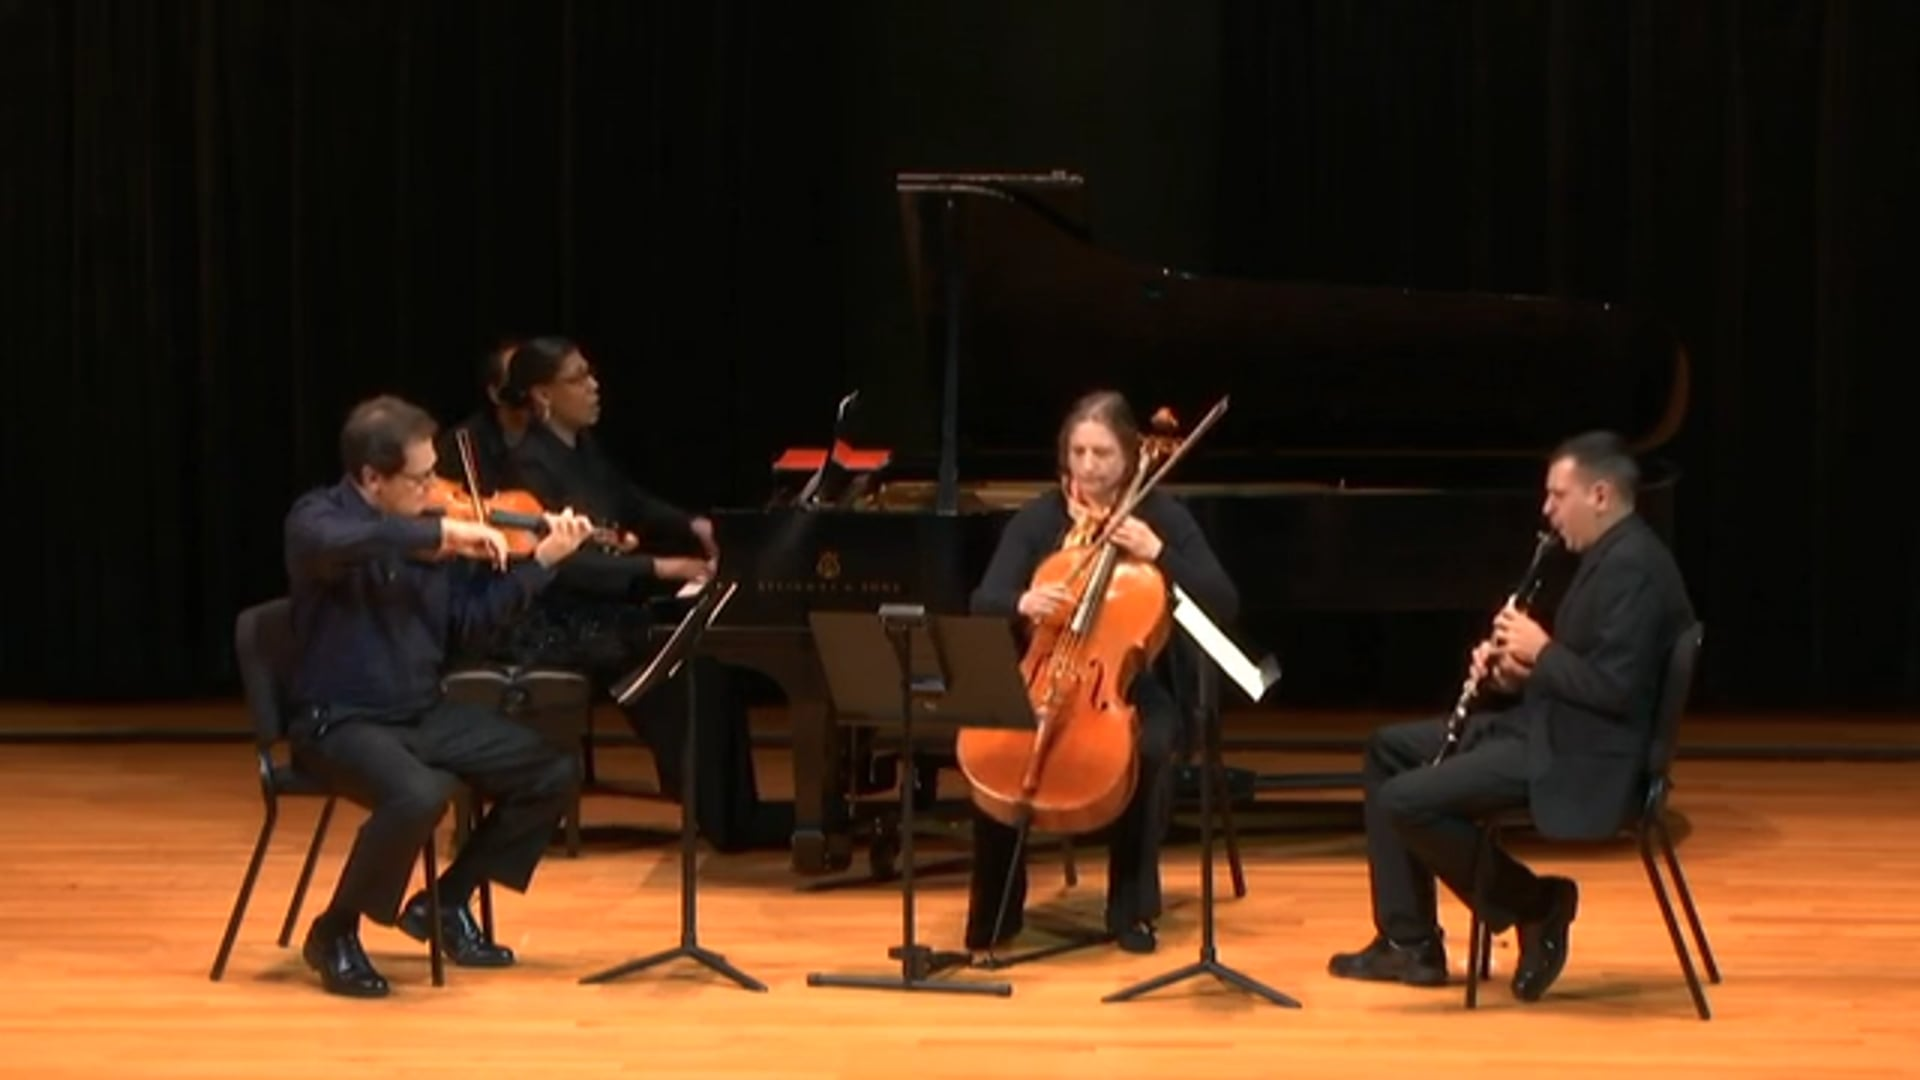 Montage Music: Live at University of Delaware